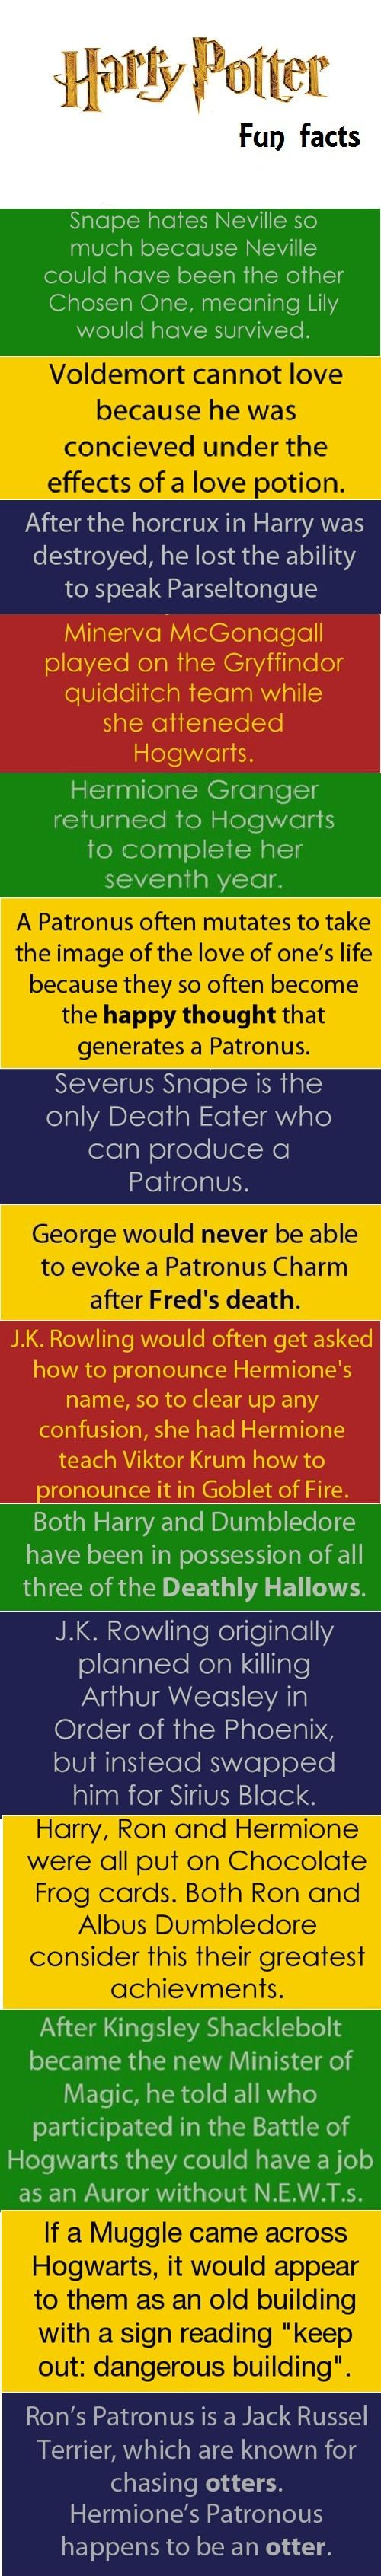 OMG George can't produce a Patronus charm anymore? *puts hand on heart* awwww poor George *cries forever*